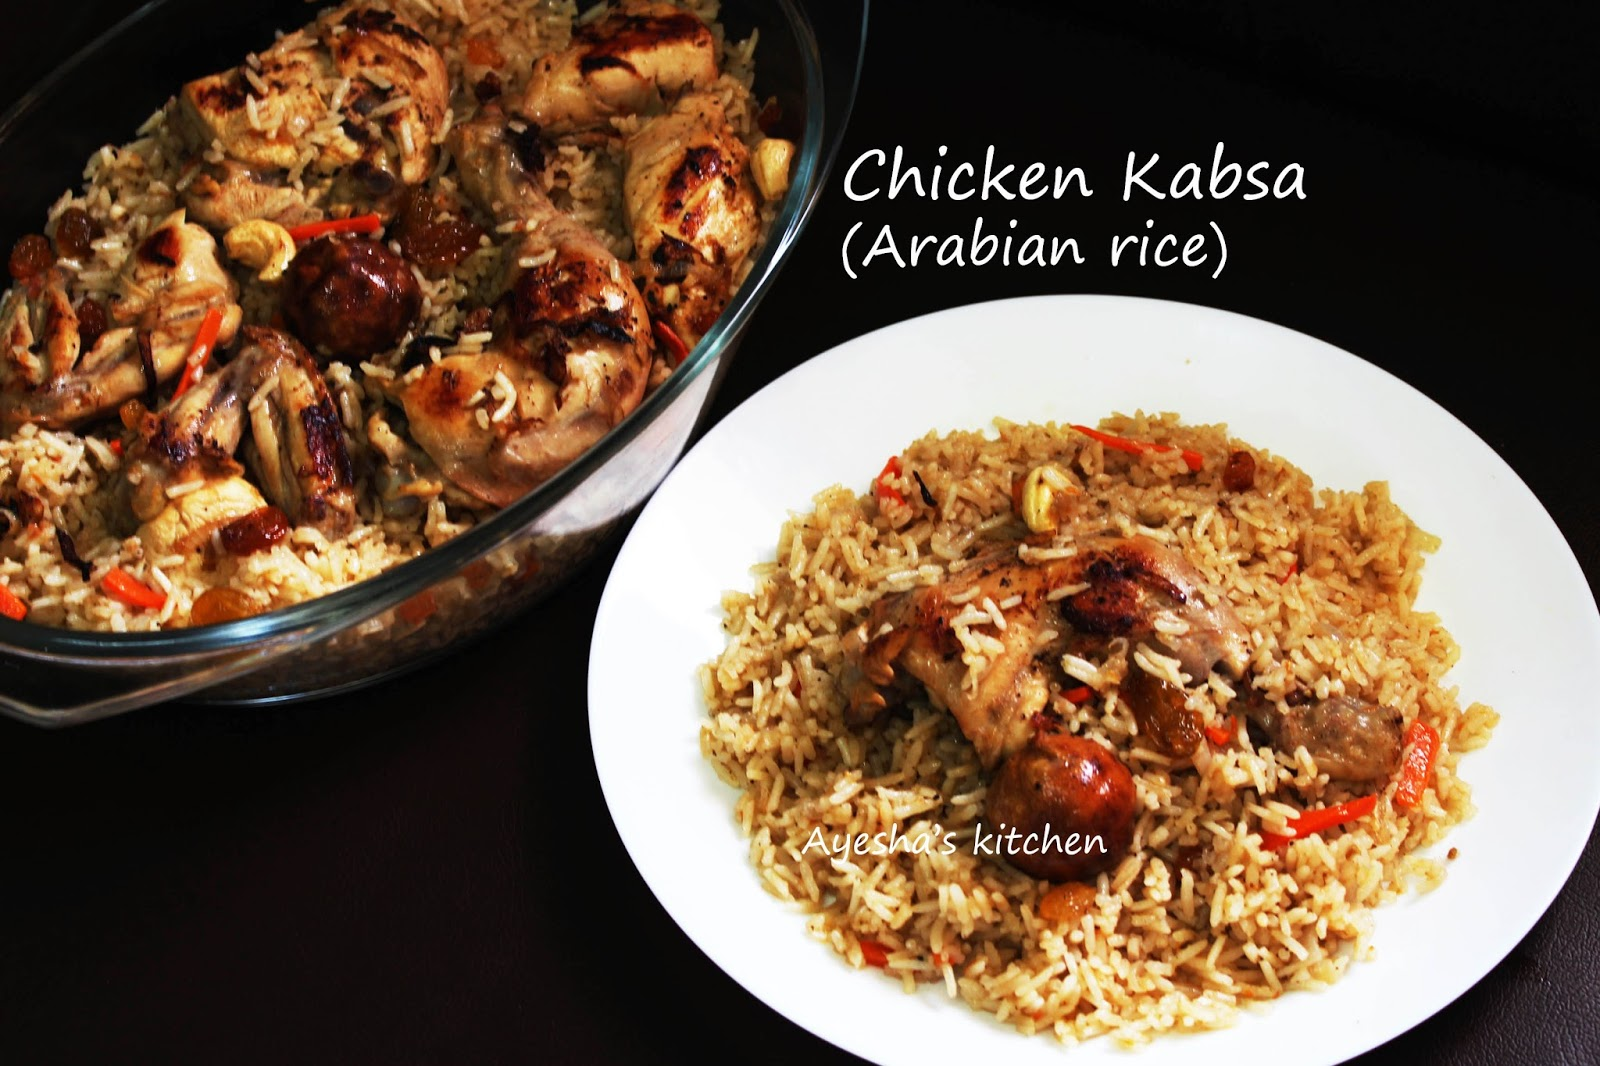 Kabsa recipe chicken kabsa arab rice recipe chicken kabsa recipe rice recipes forumfinder Choice Image